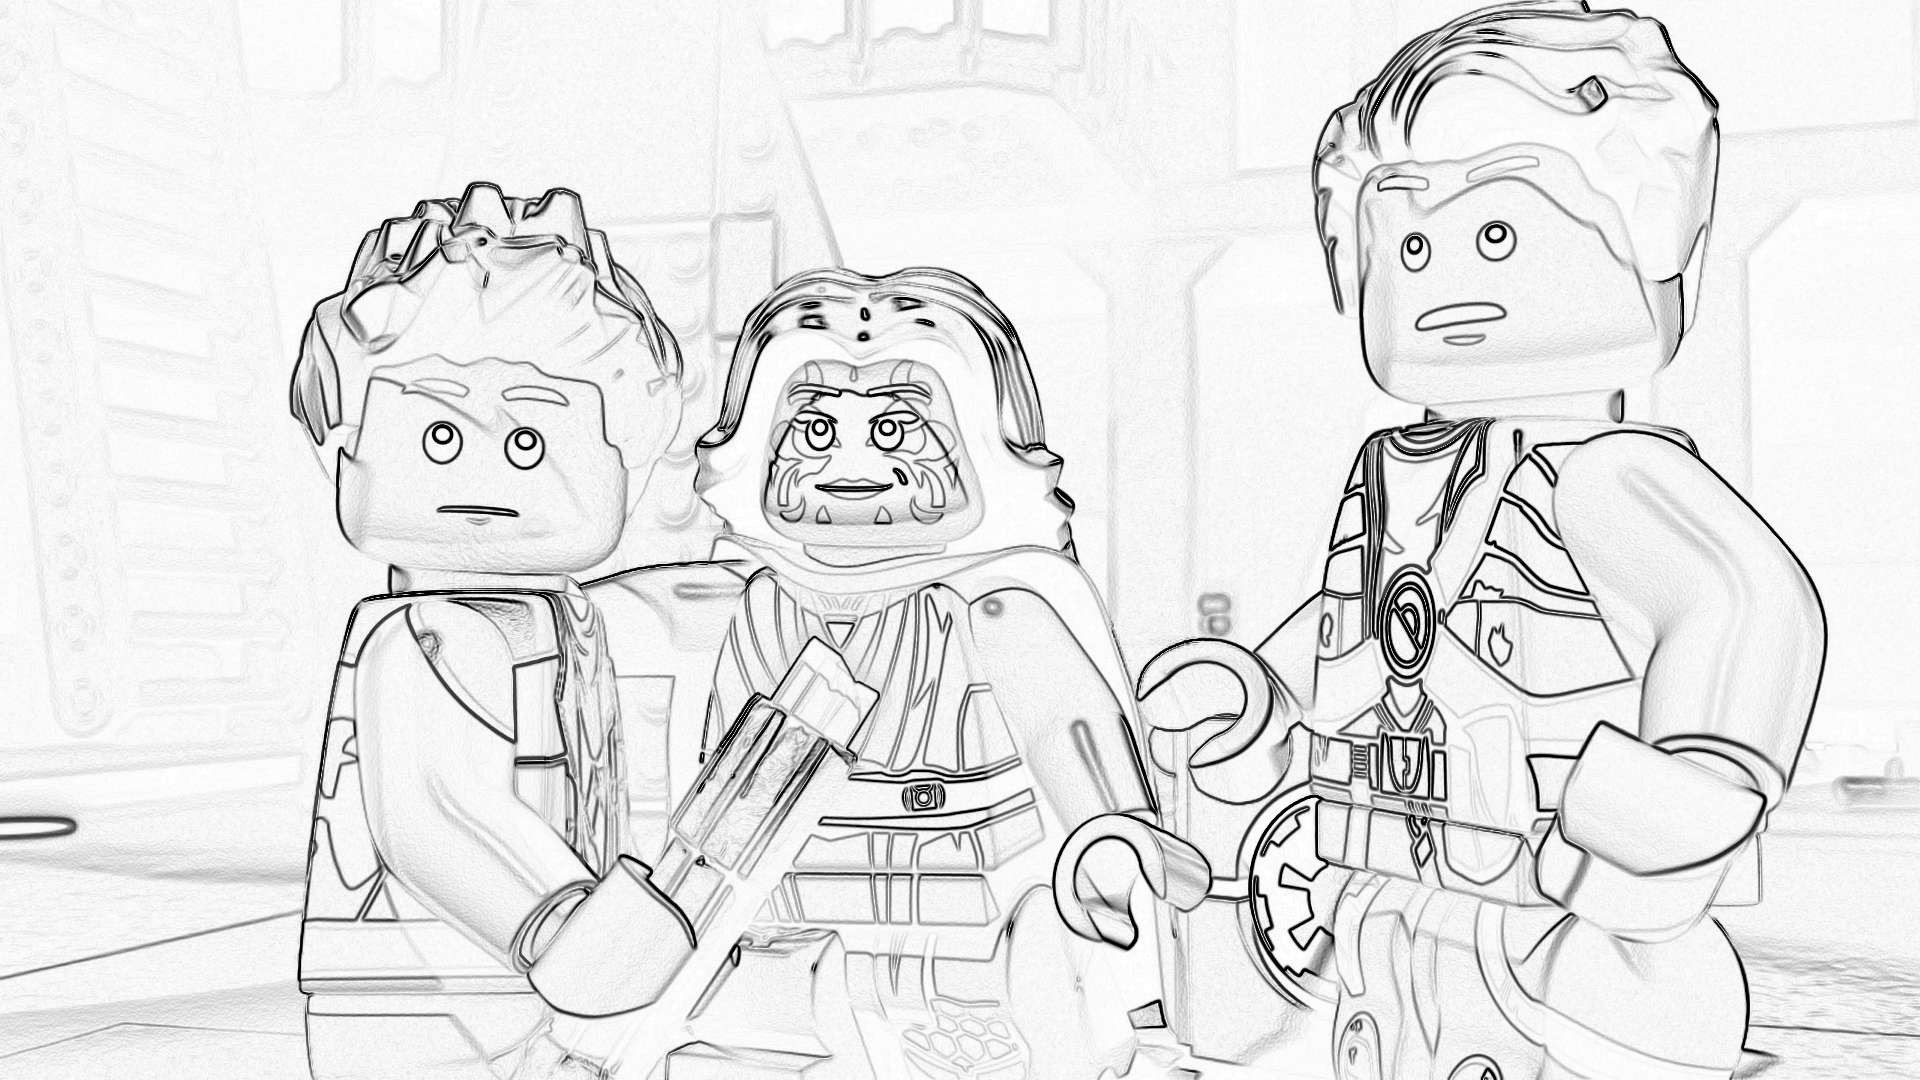 Lego Star Wars Malvorlagen Das Beste Von Lego Star Wars 3 Coloring Pages Free Lego Christmas Coloring Pages Bilder